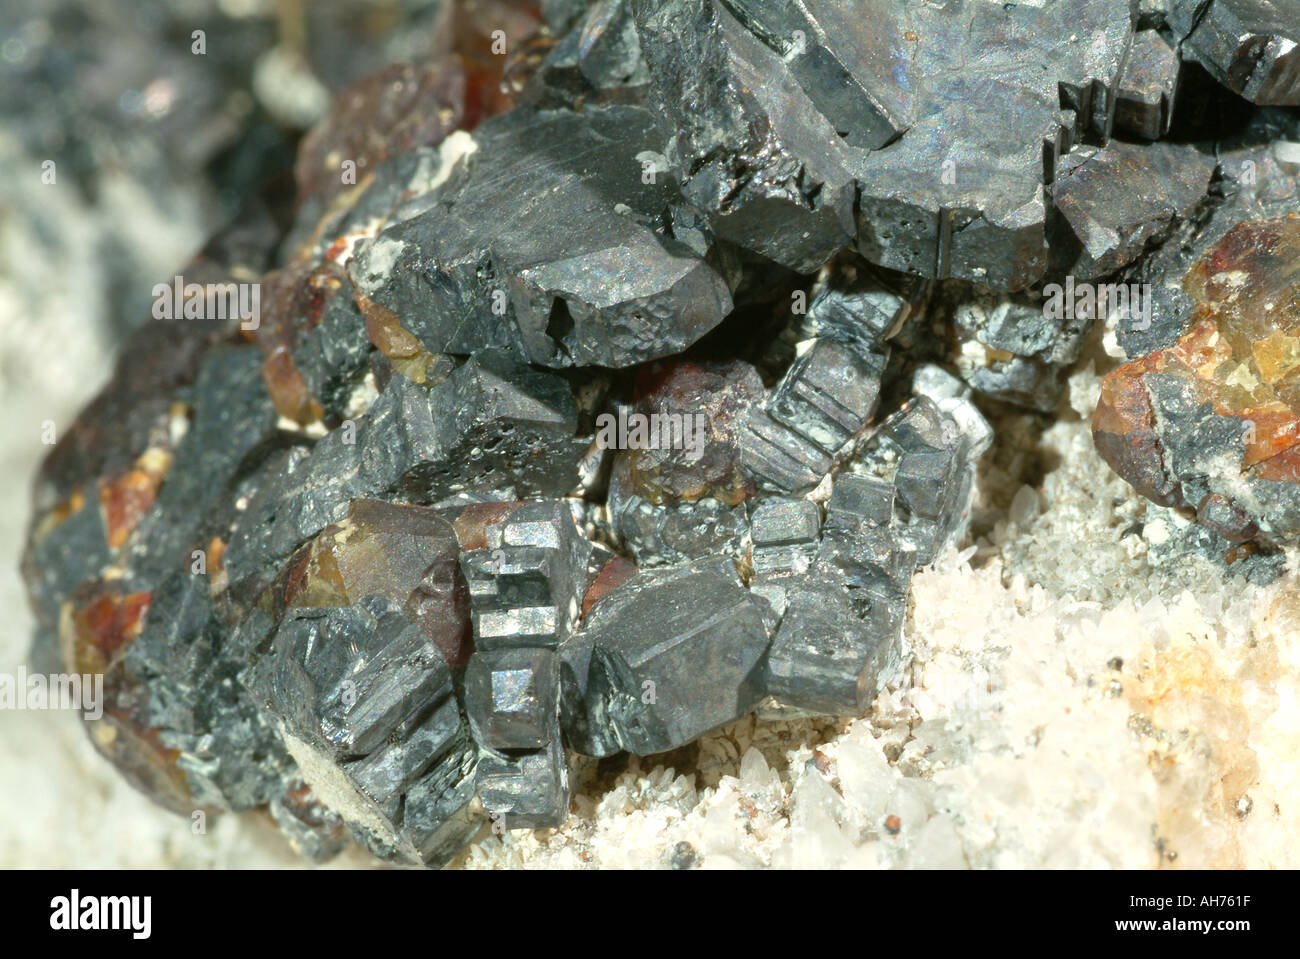 Mineral Bournonite, Bournonite crystals with ruby sphalerite crystals on quartz, Wheal Boys, St. Endellion, Cornwall, England - Stock Image